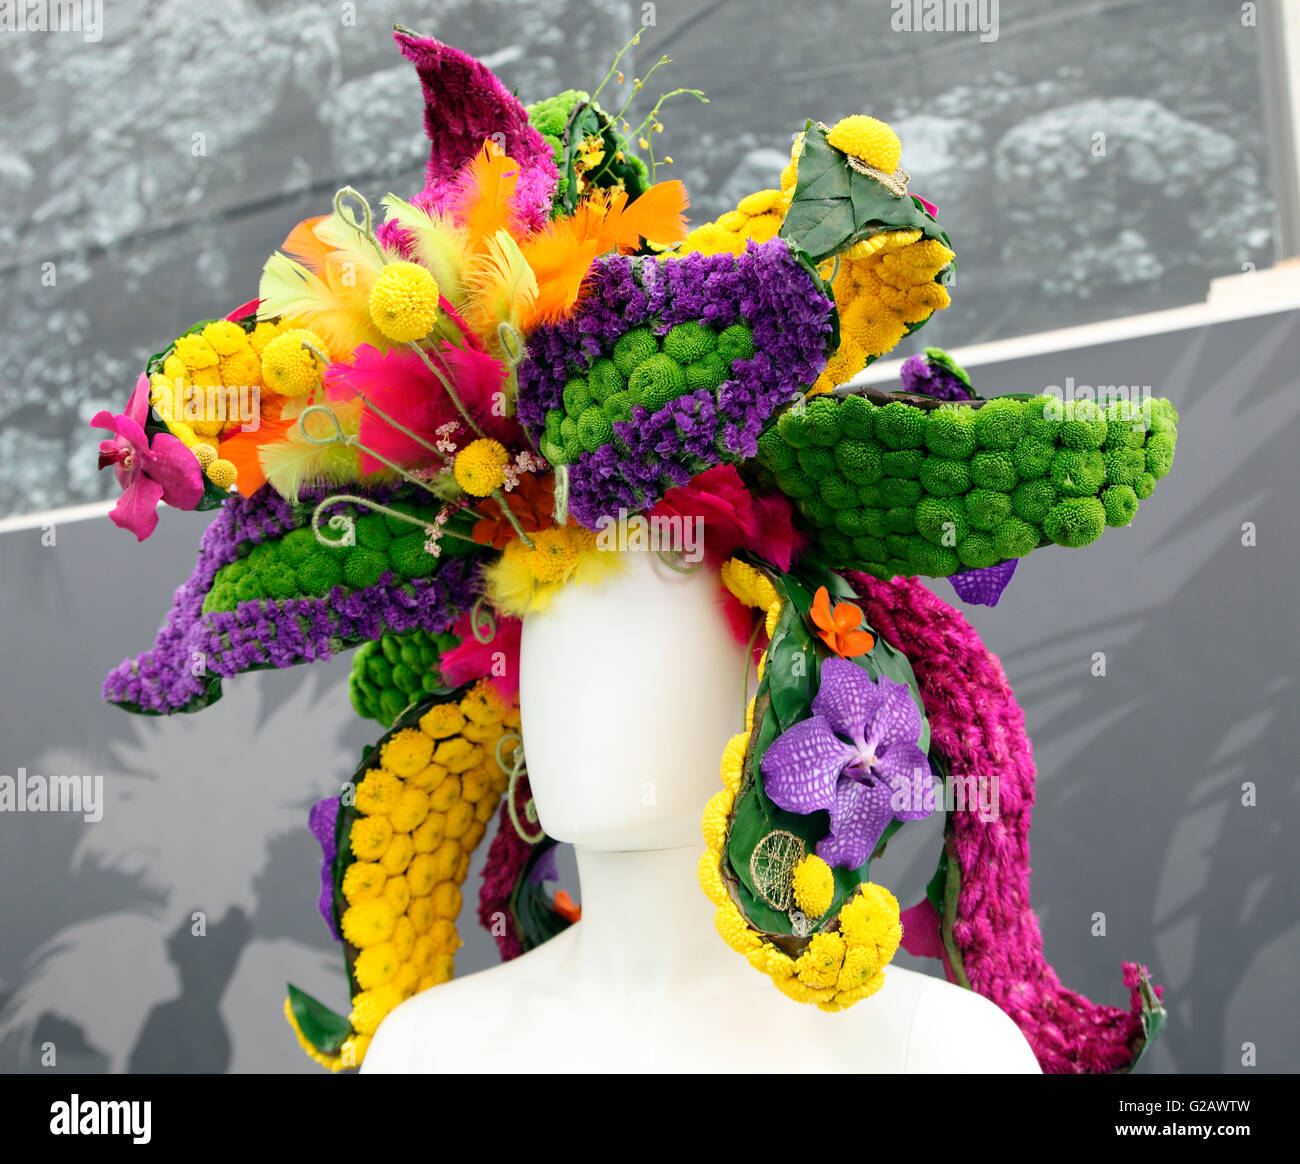 Fantasy floral headgear in the Great Pavilion, RHS Chelsea Flower Show 2016 - Stock Image